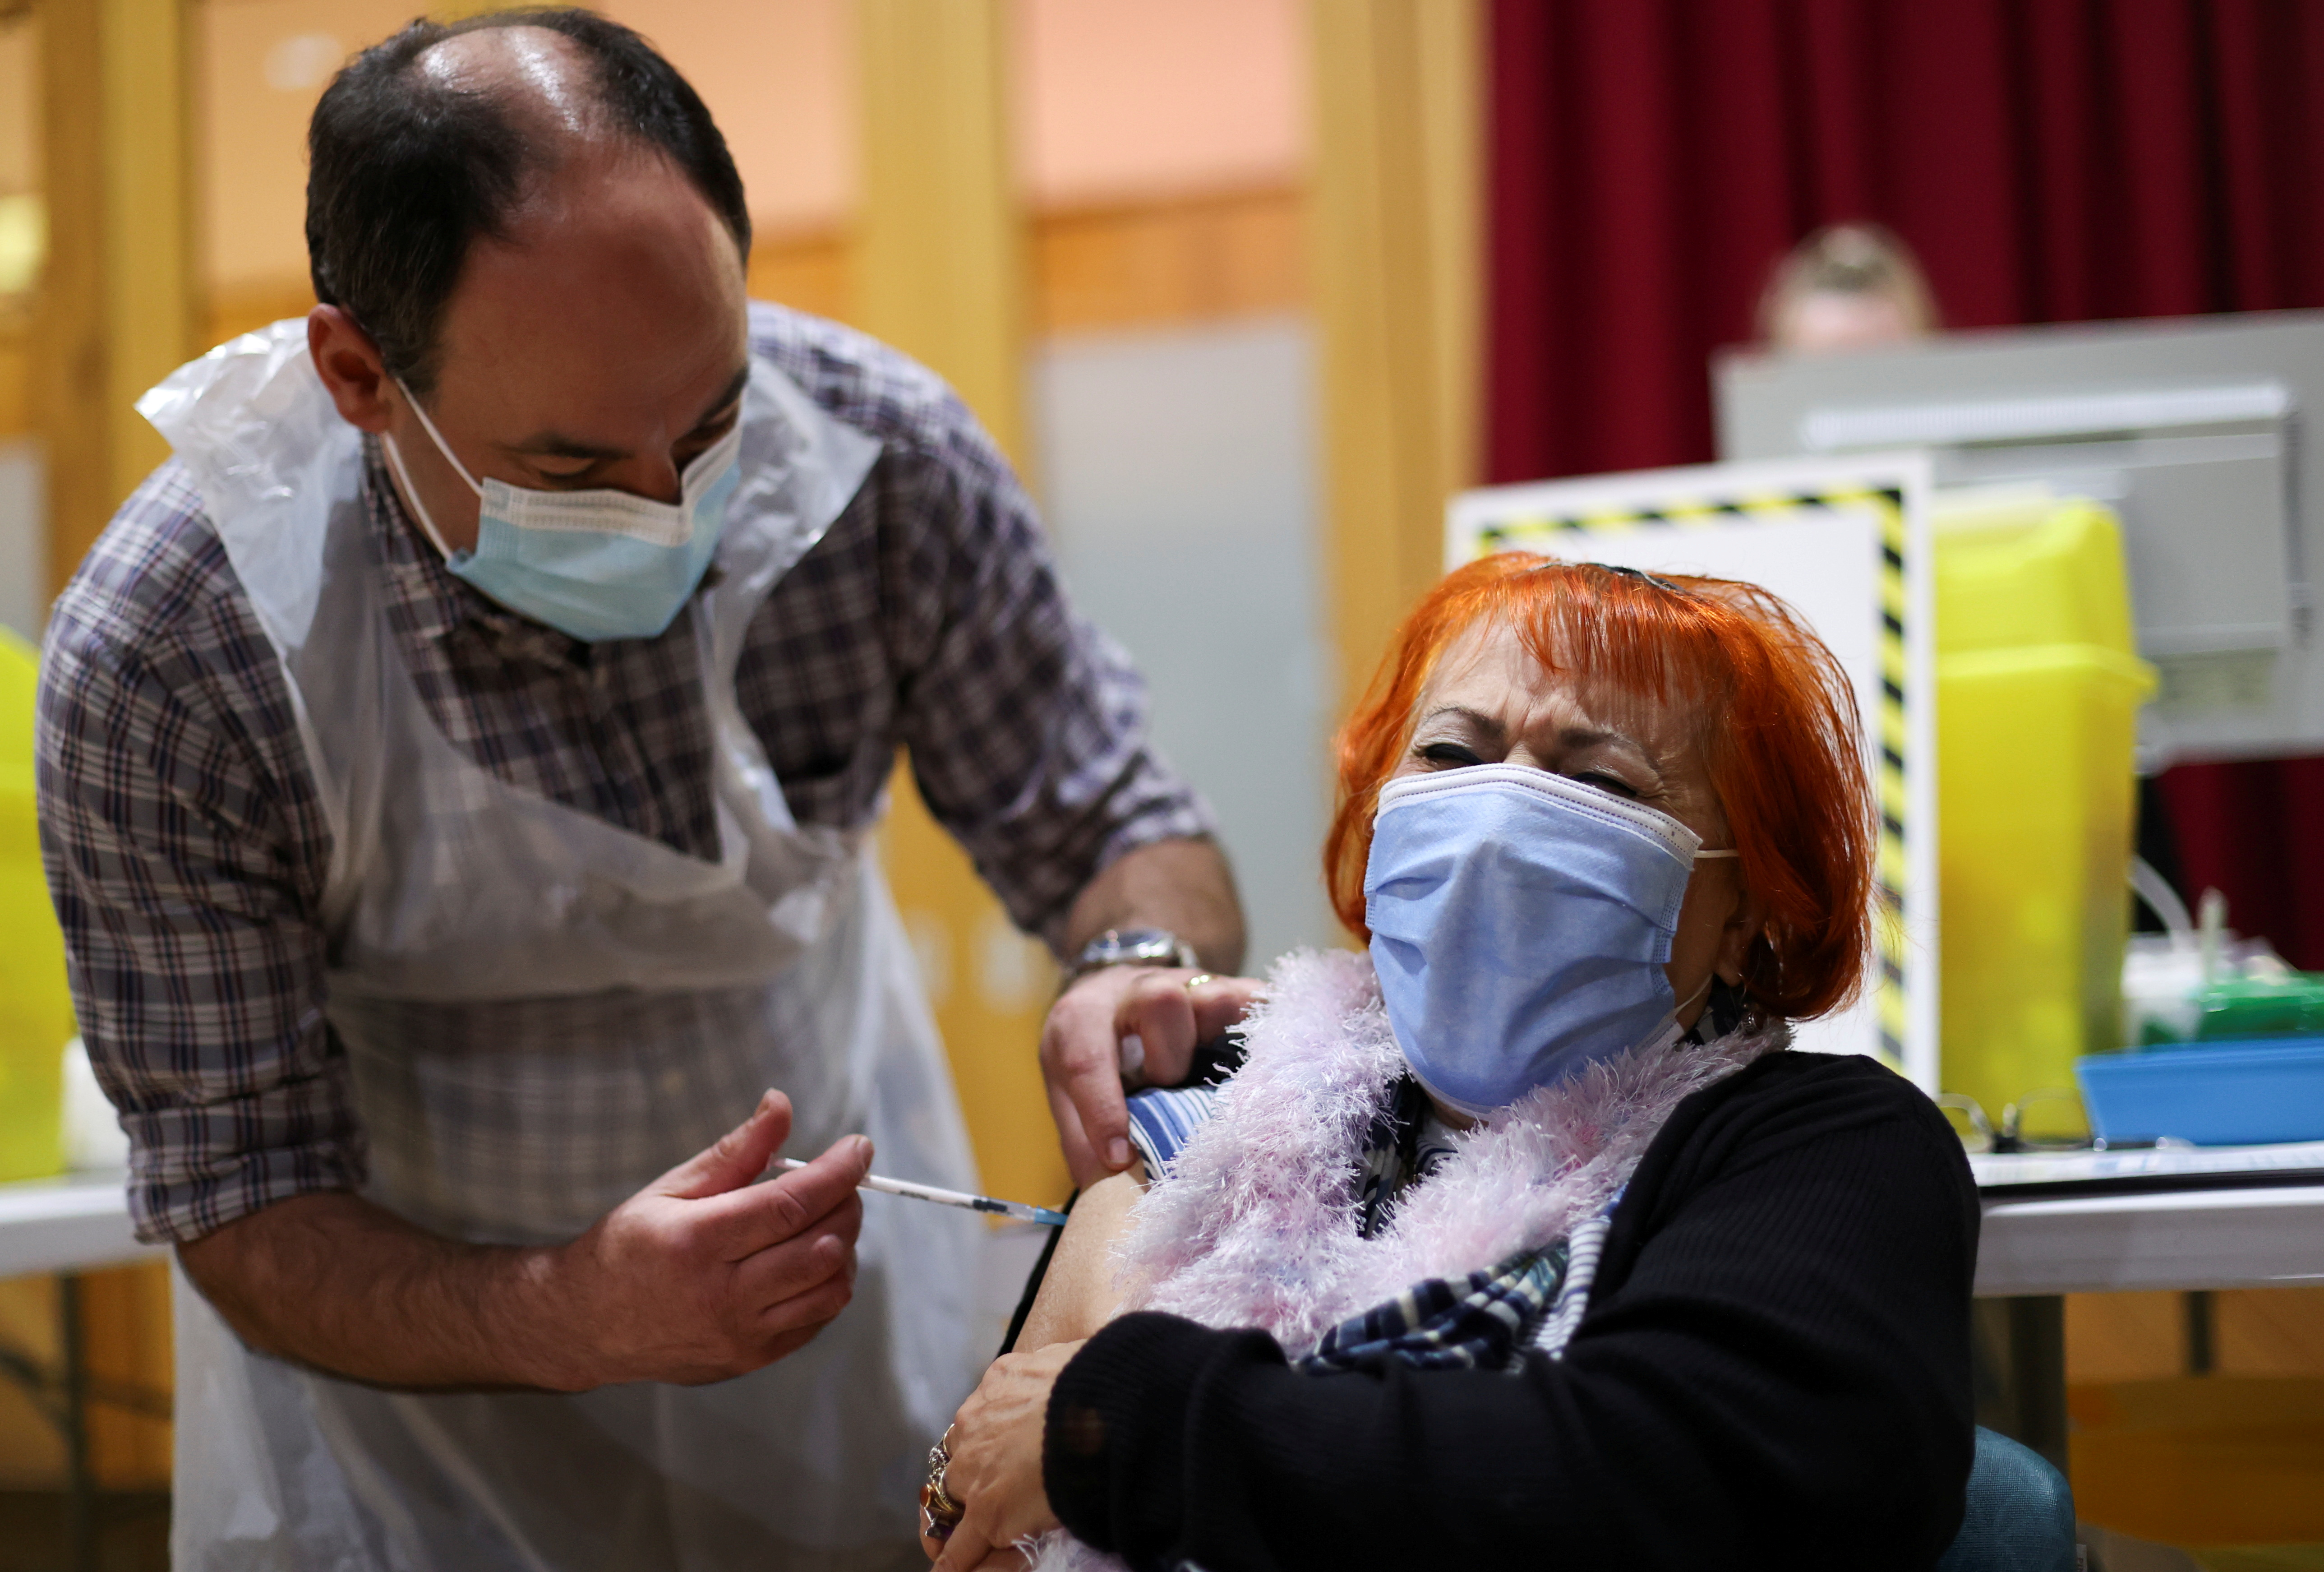 A woman receives a vaccine against the coronavirus disease (COVID-19) in the Winding Wheel Theatre, Chesterfield, Britain February 3, 2021. REUTERS/Carl Recine